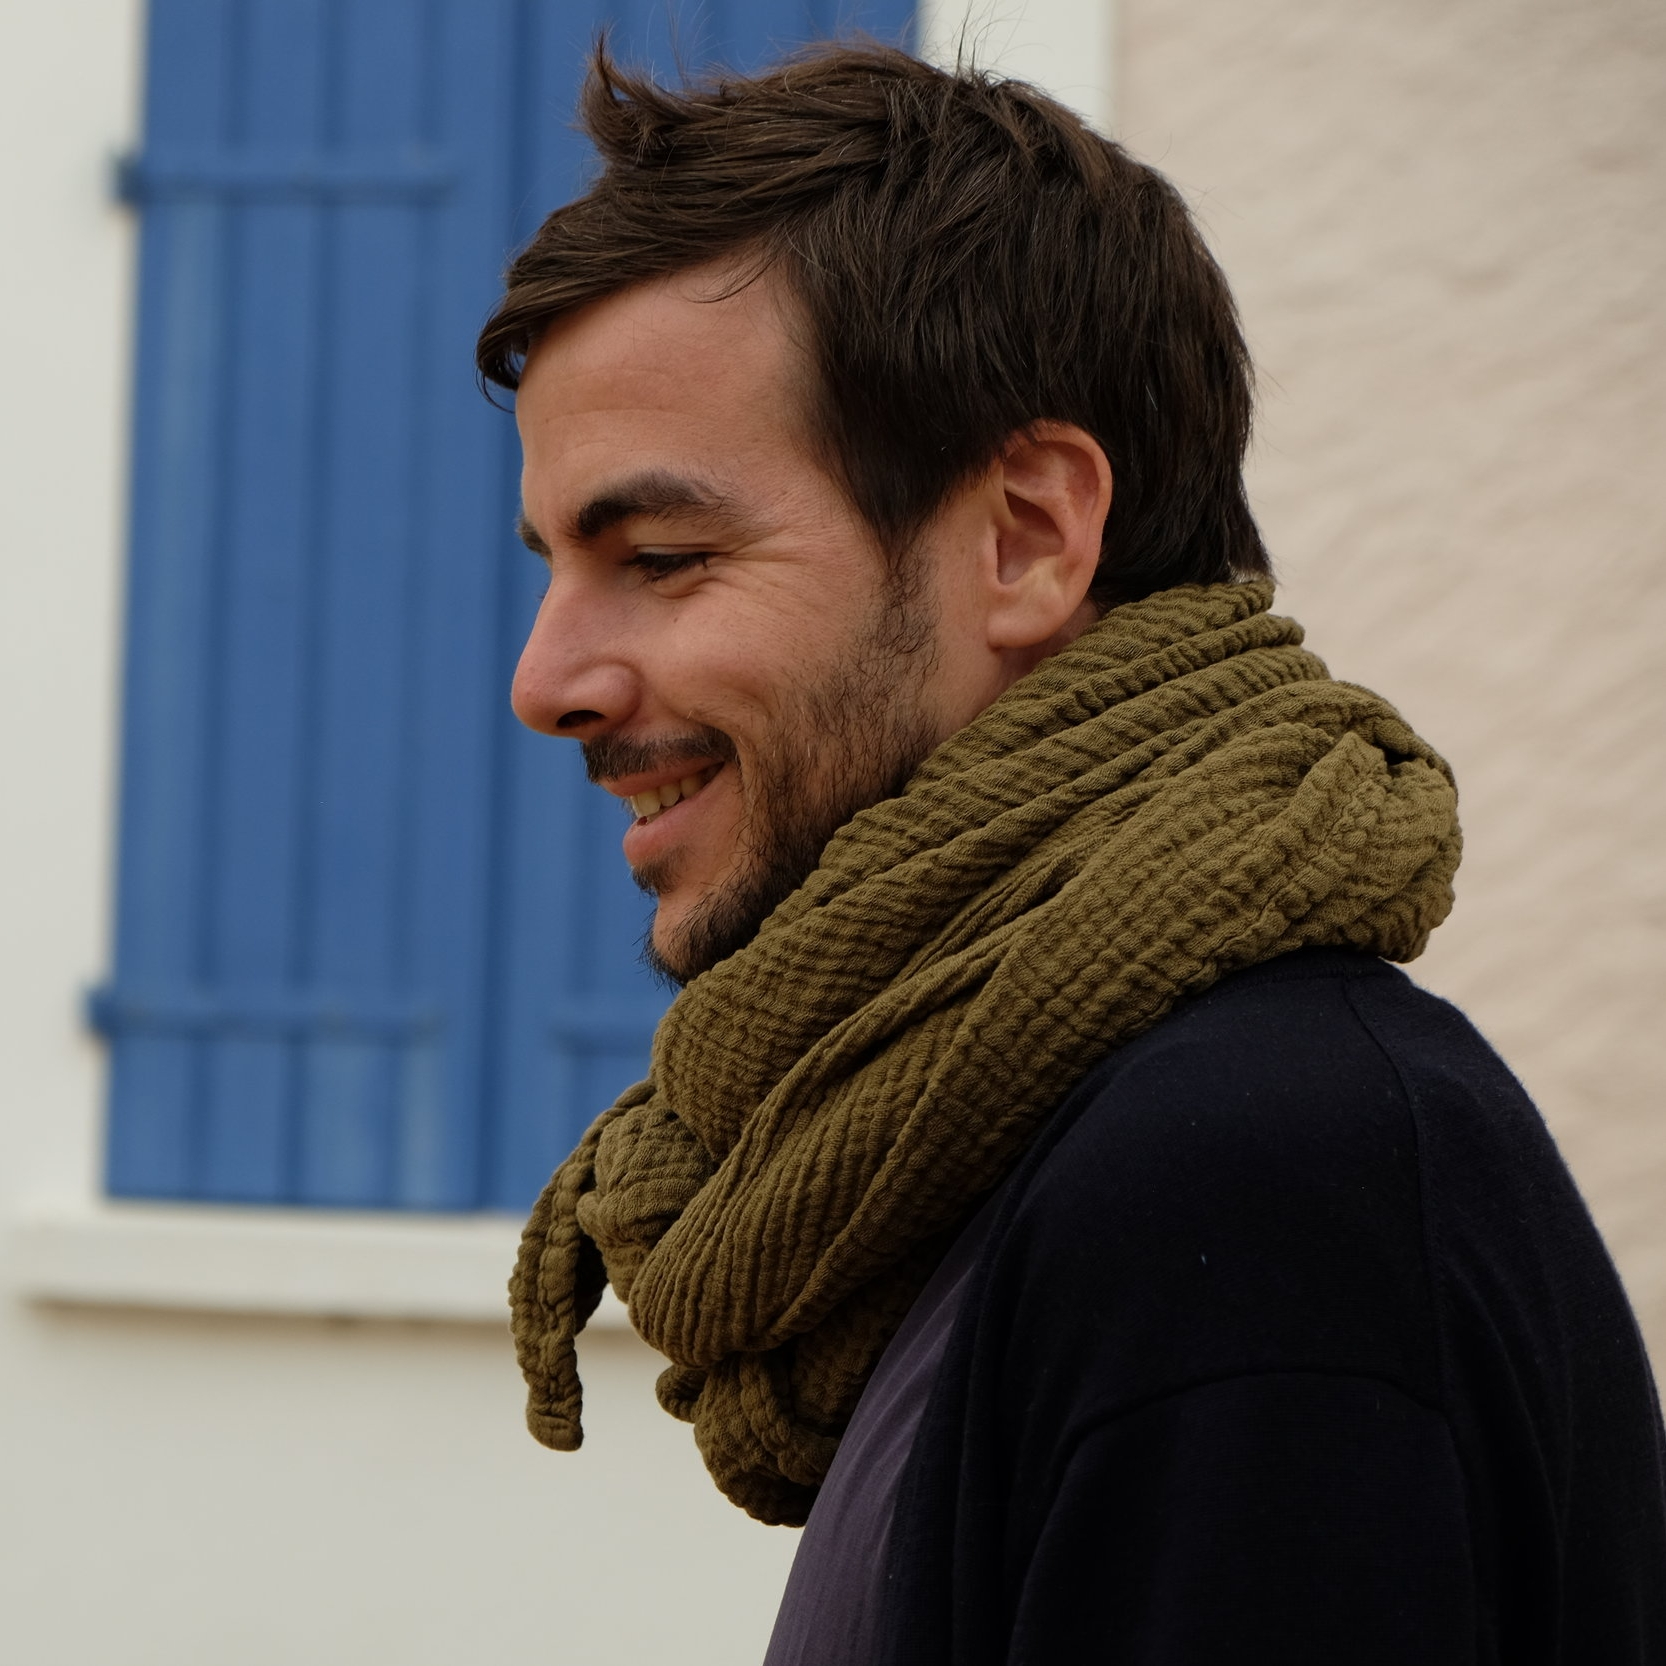 THE all-in-one SCARF - For meditation, for travels, for beach days and nights… made locally and sustainably, this scarf is a winner. Wayda scarf, 78€Image: wayda